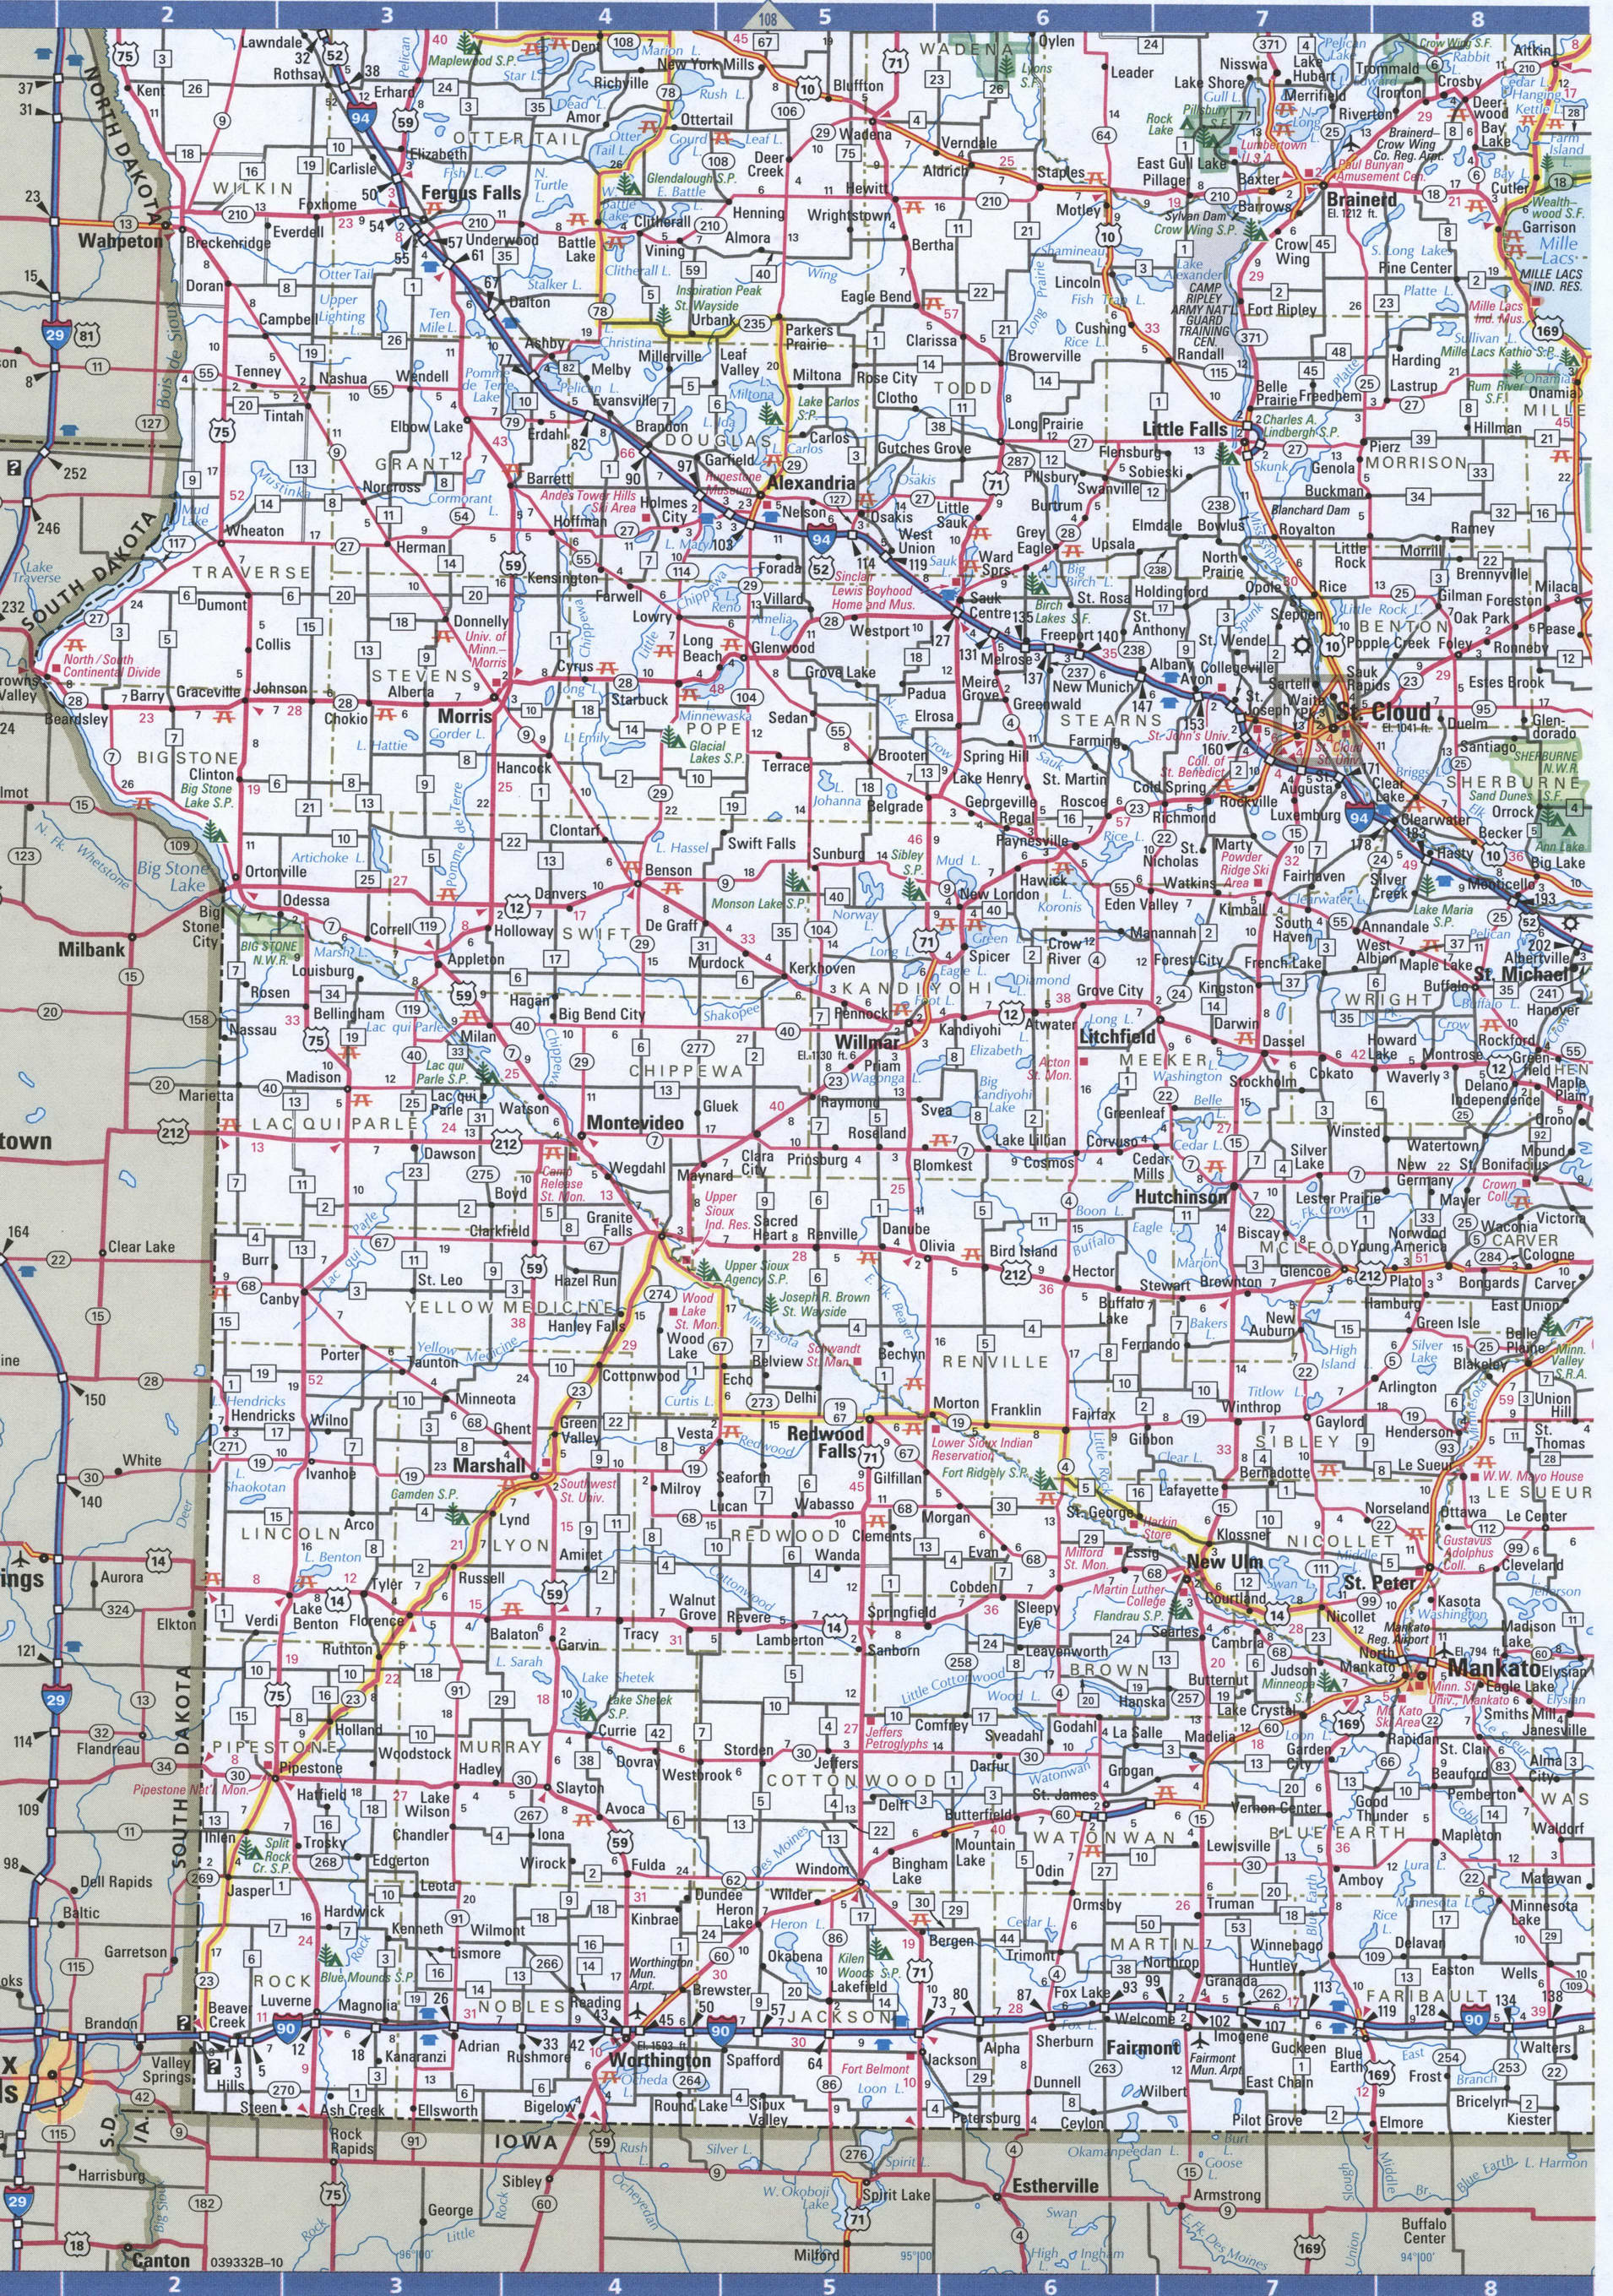 WestSouth Minnesota map